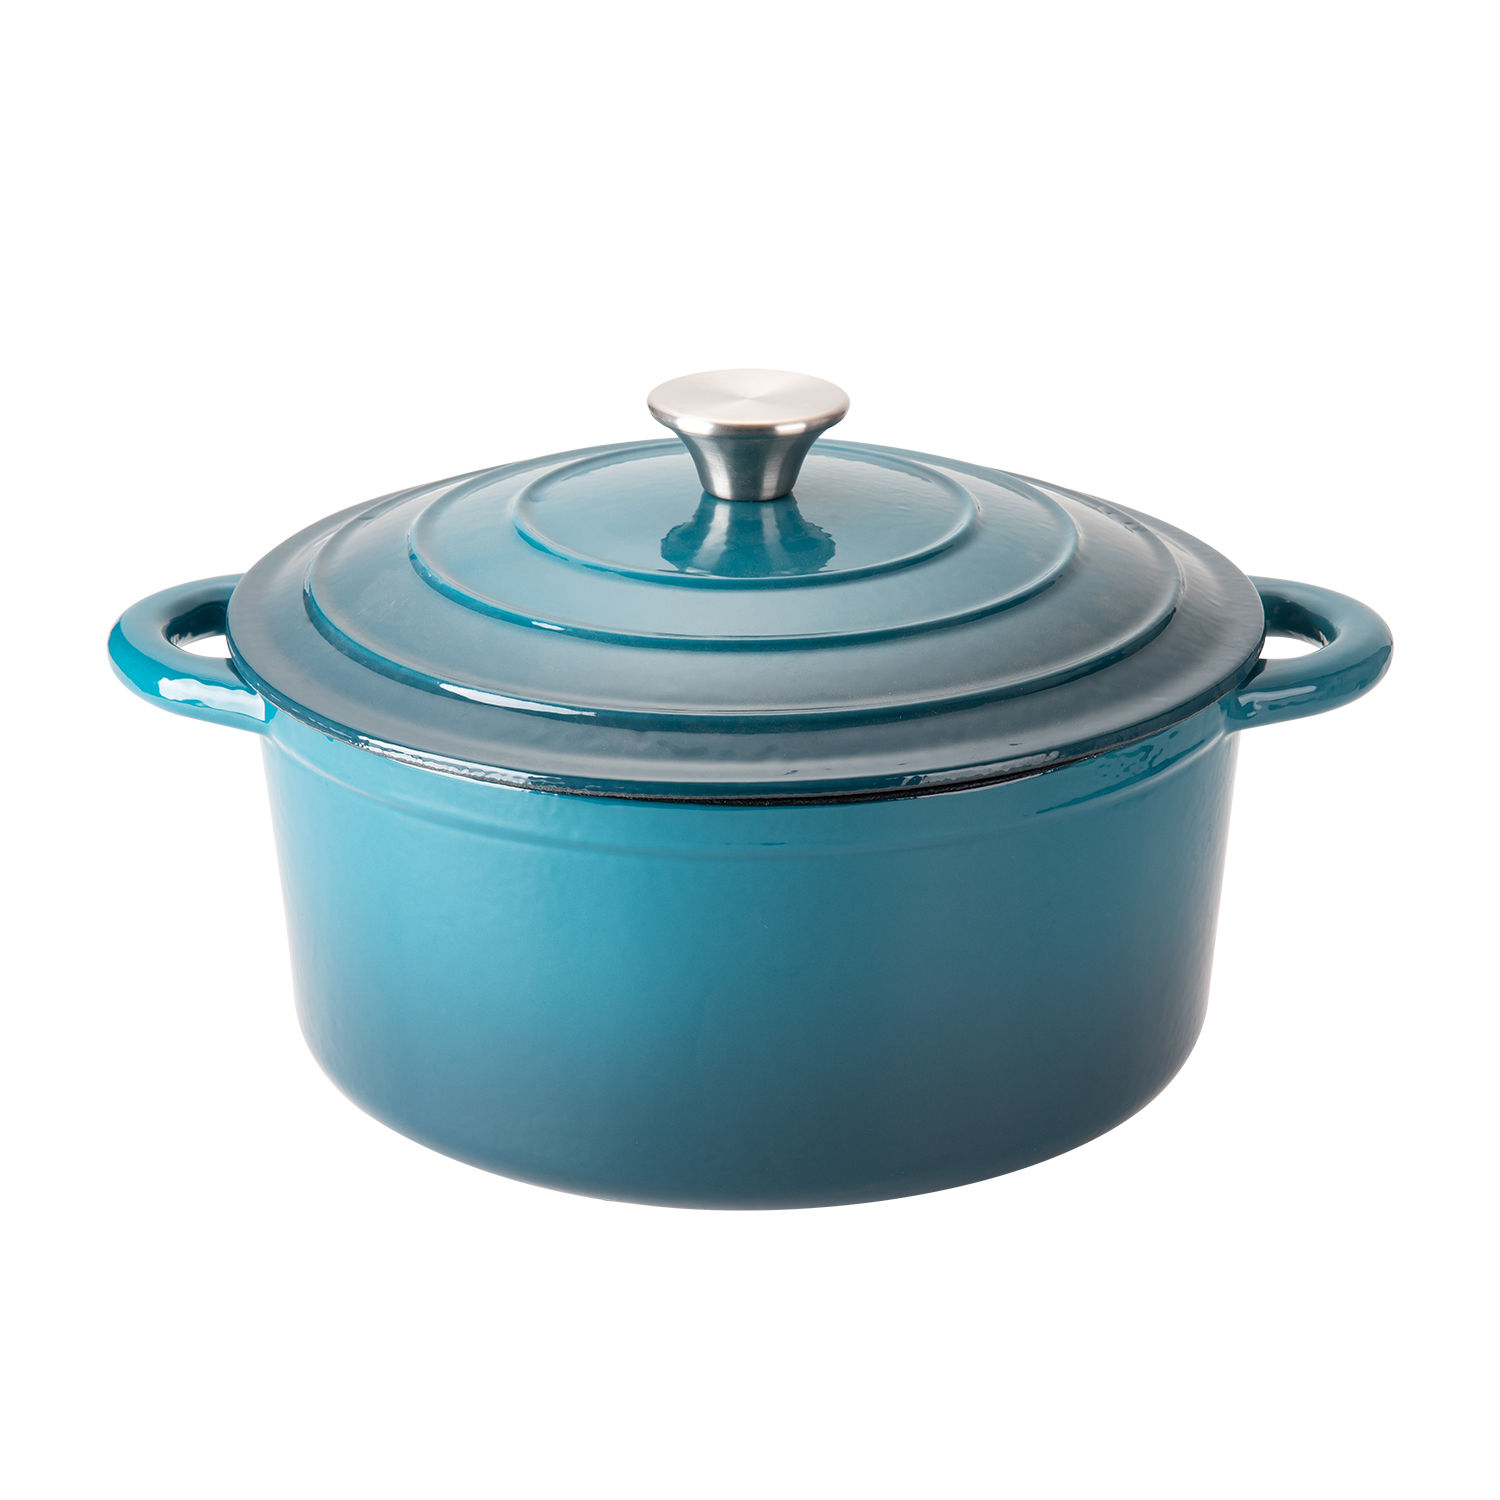 Hamilton Beach Cast Iron Dutch Oven